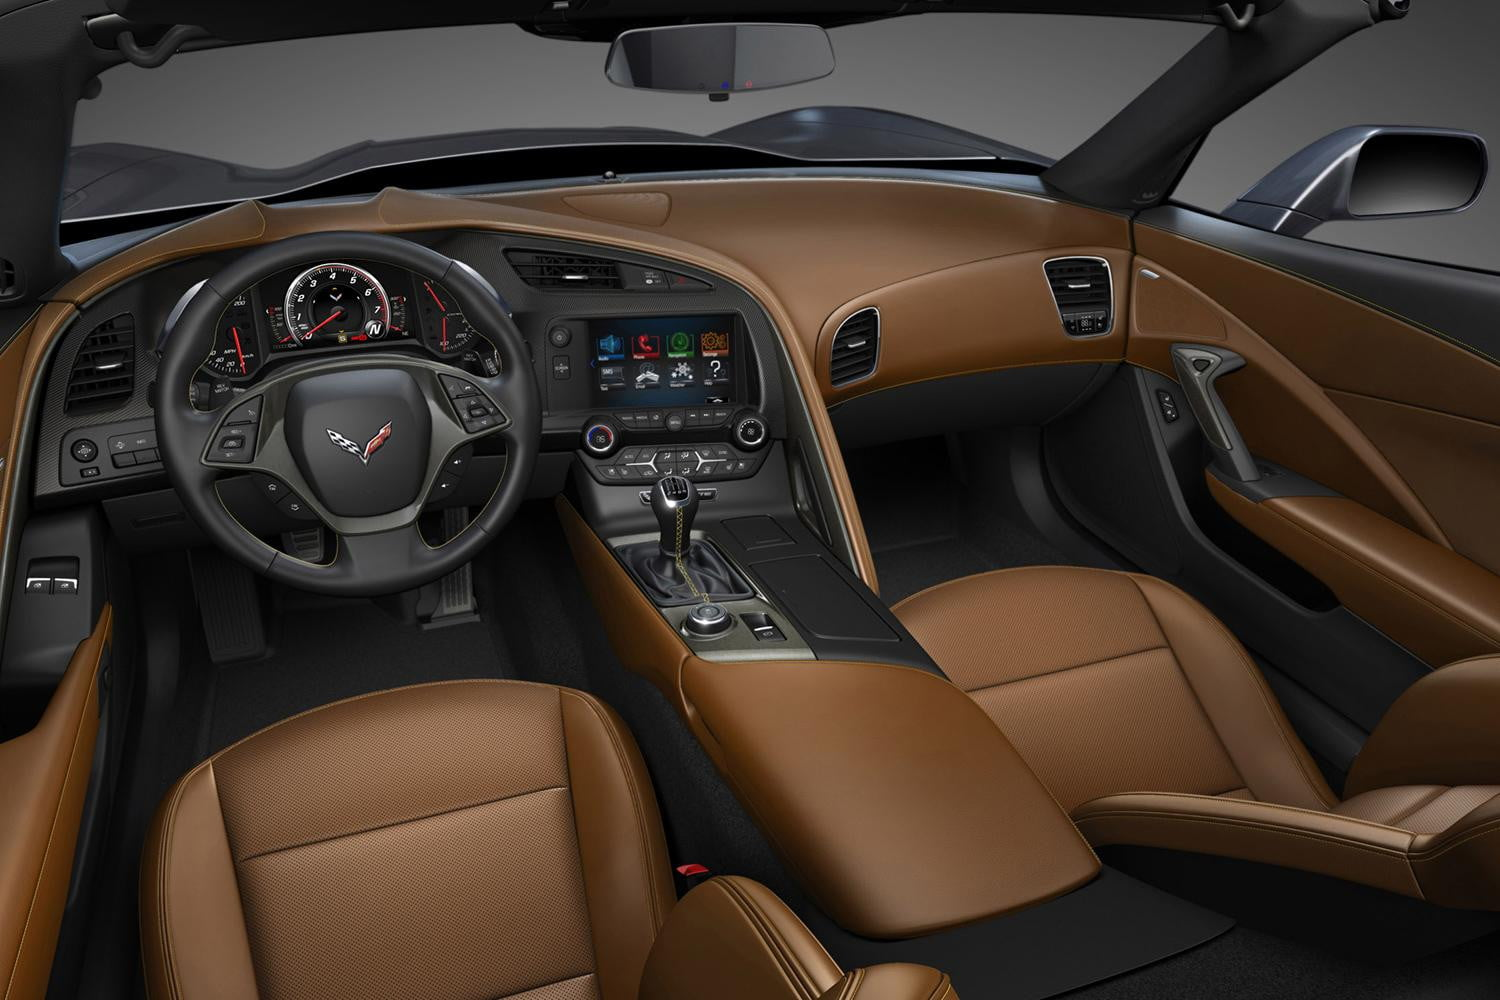 The 2014 Corvette gears up for street debut, supercar competition ...